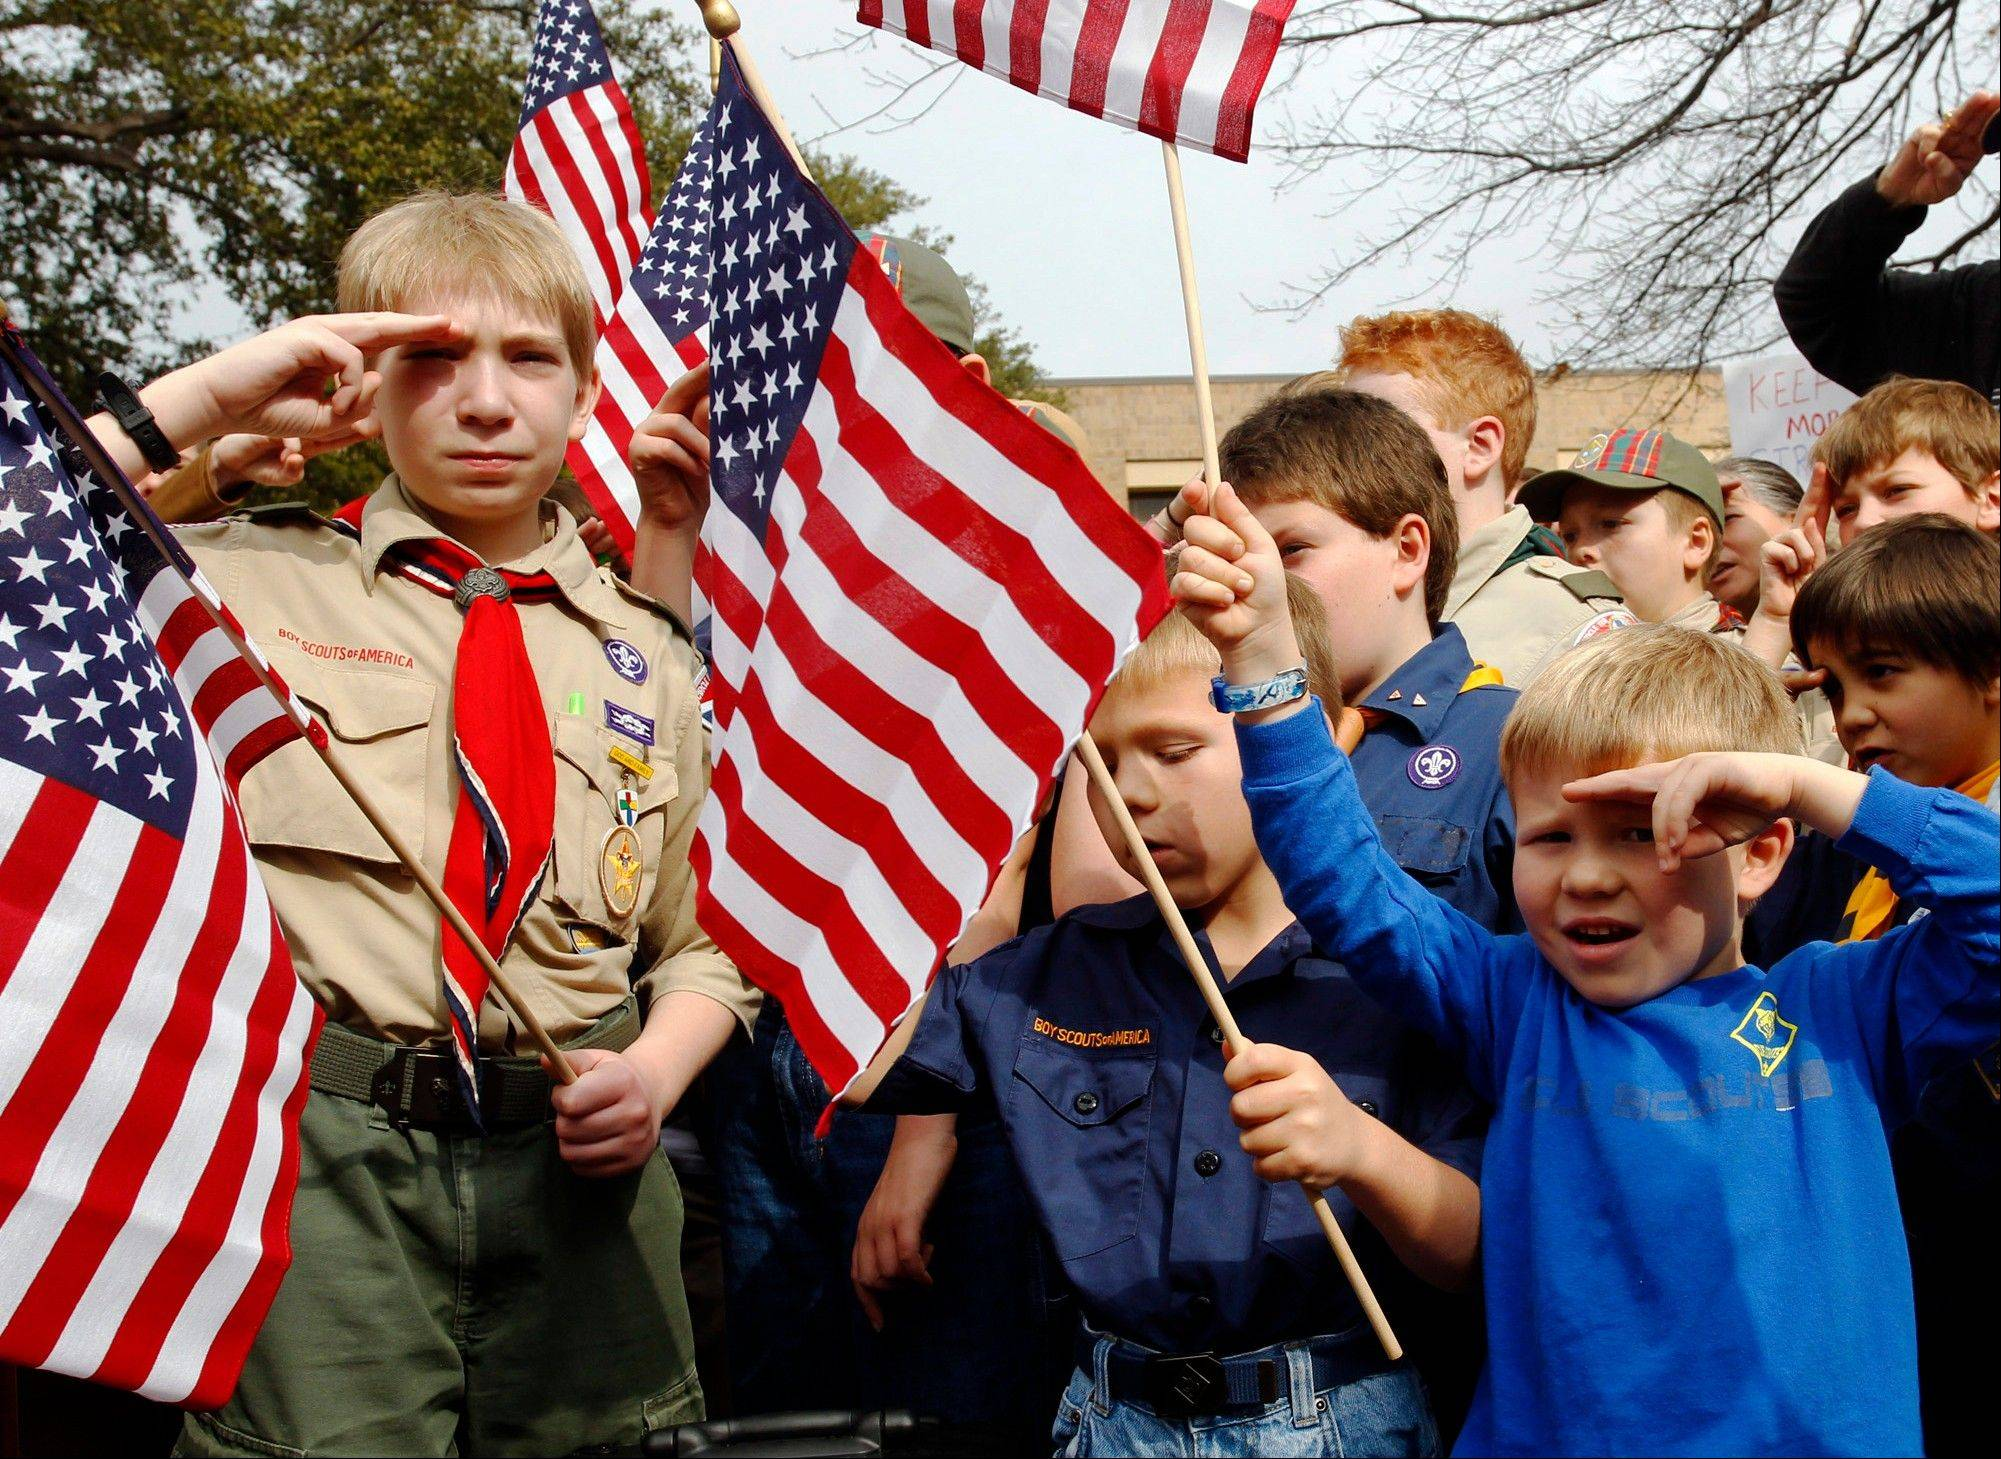 Associated Press/Feb. 6, 2013From left, Joshua Kusterer, 12, Nach Mitschke, 6, and Wyatt Mitschke, 4, salute as they recite the pledge of allegiance during